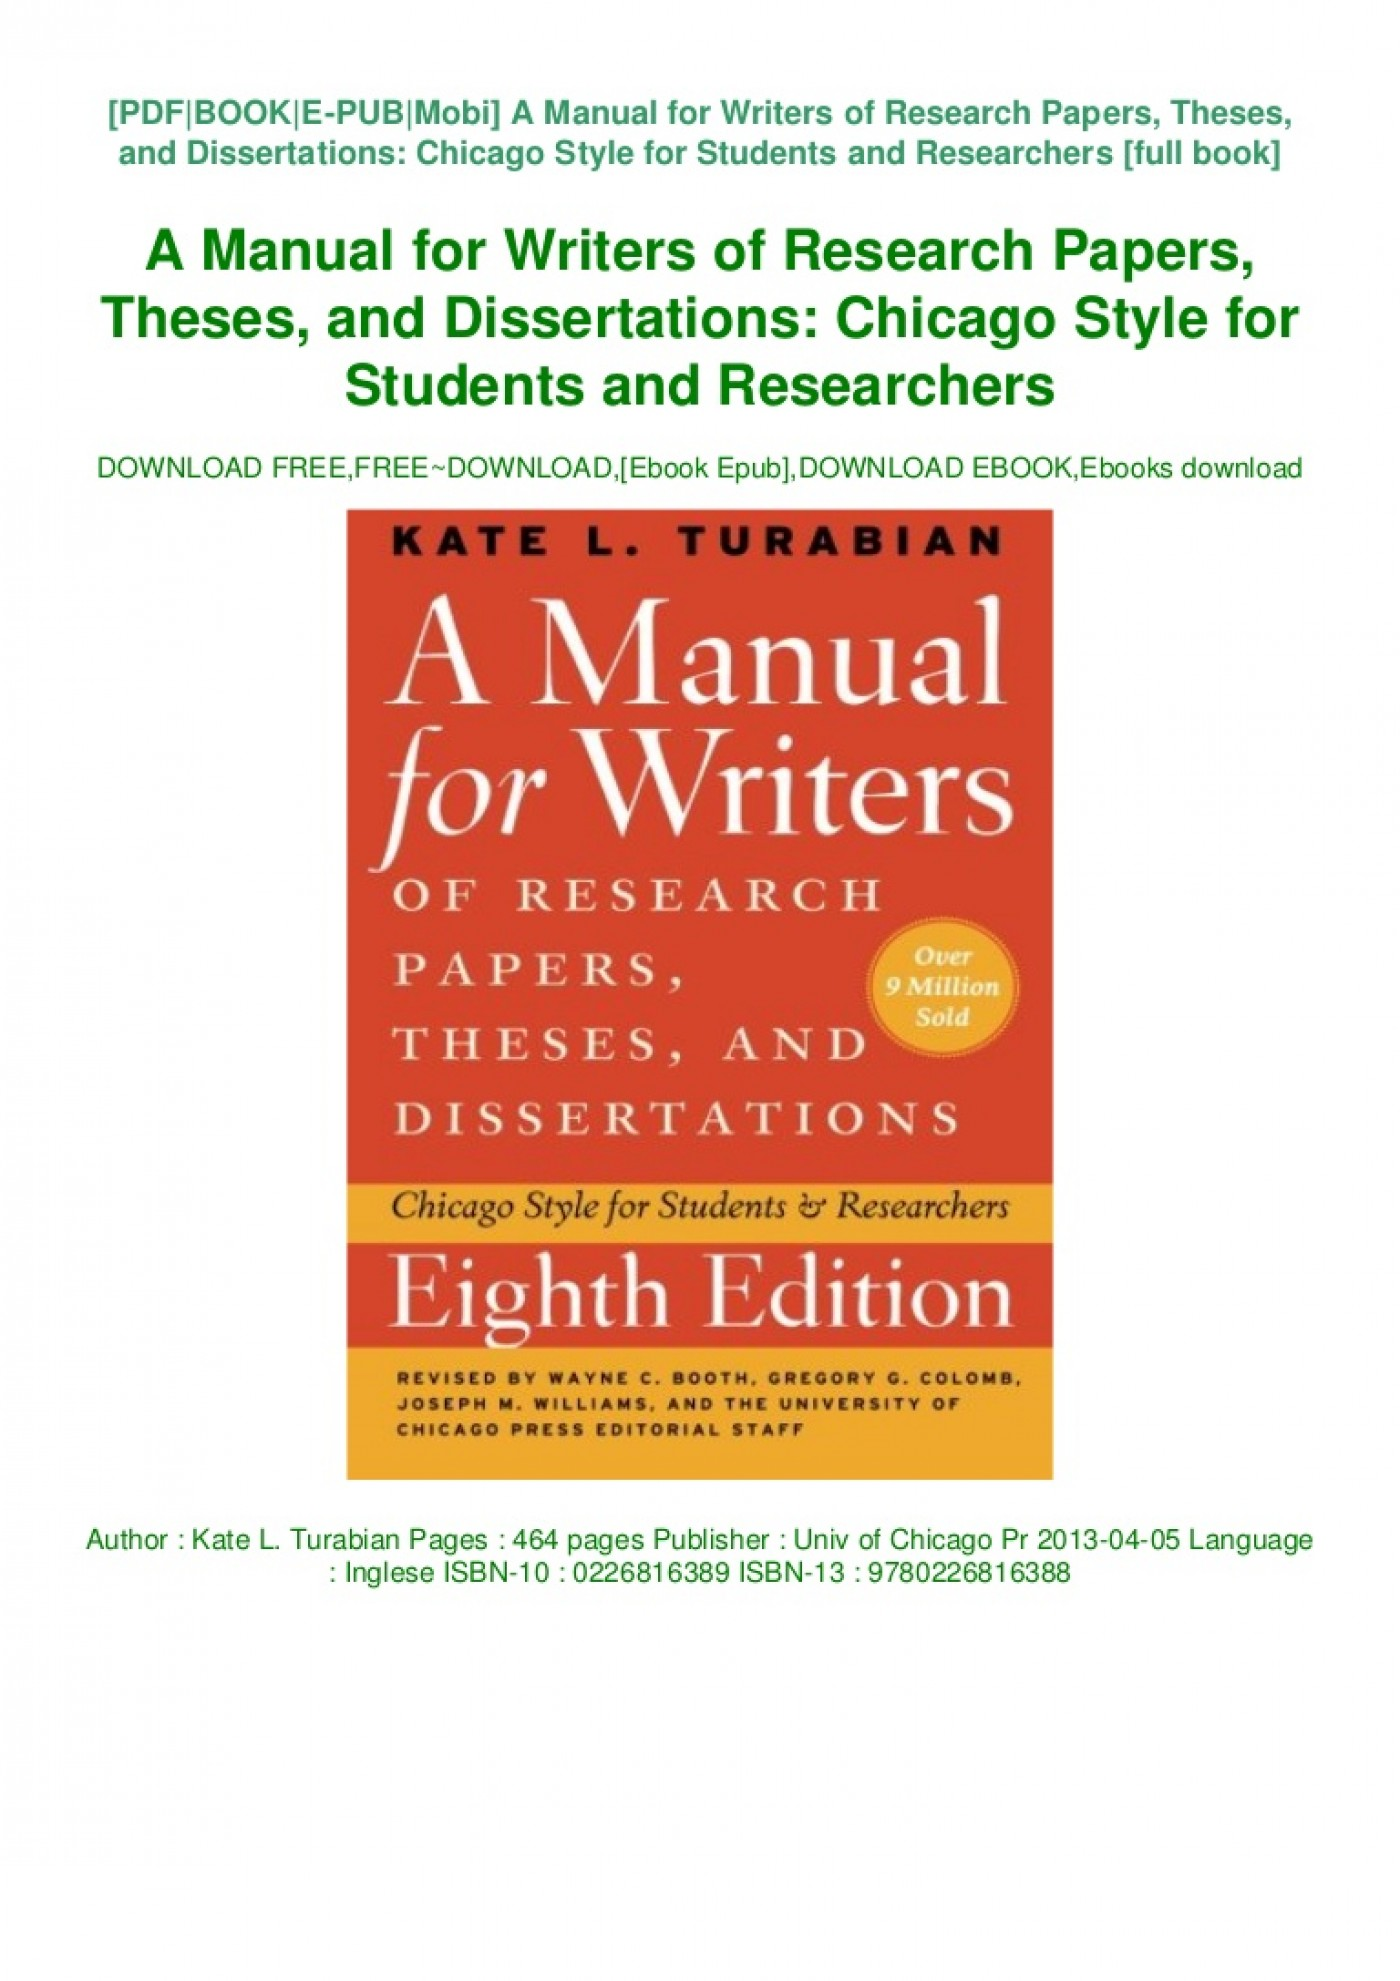 005 Manual For Writers Of Research Papers Theses And Dissertations Turabian Paper Book Thumbnail Amazing A Pdf 1400